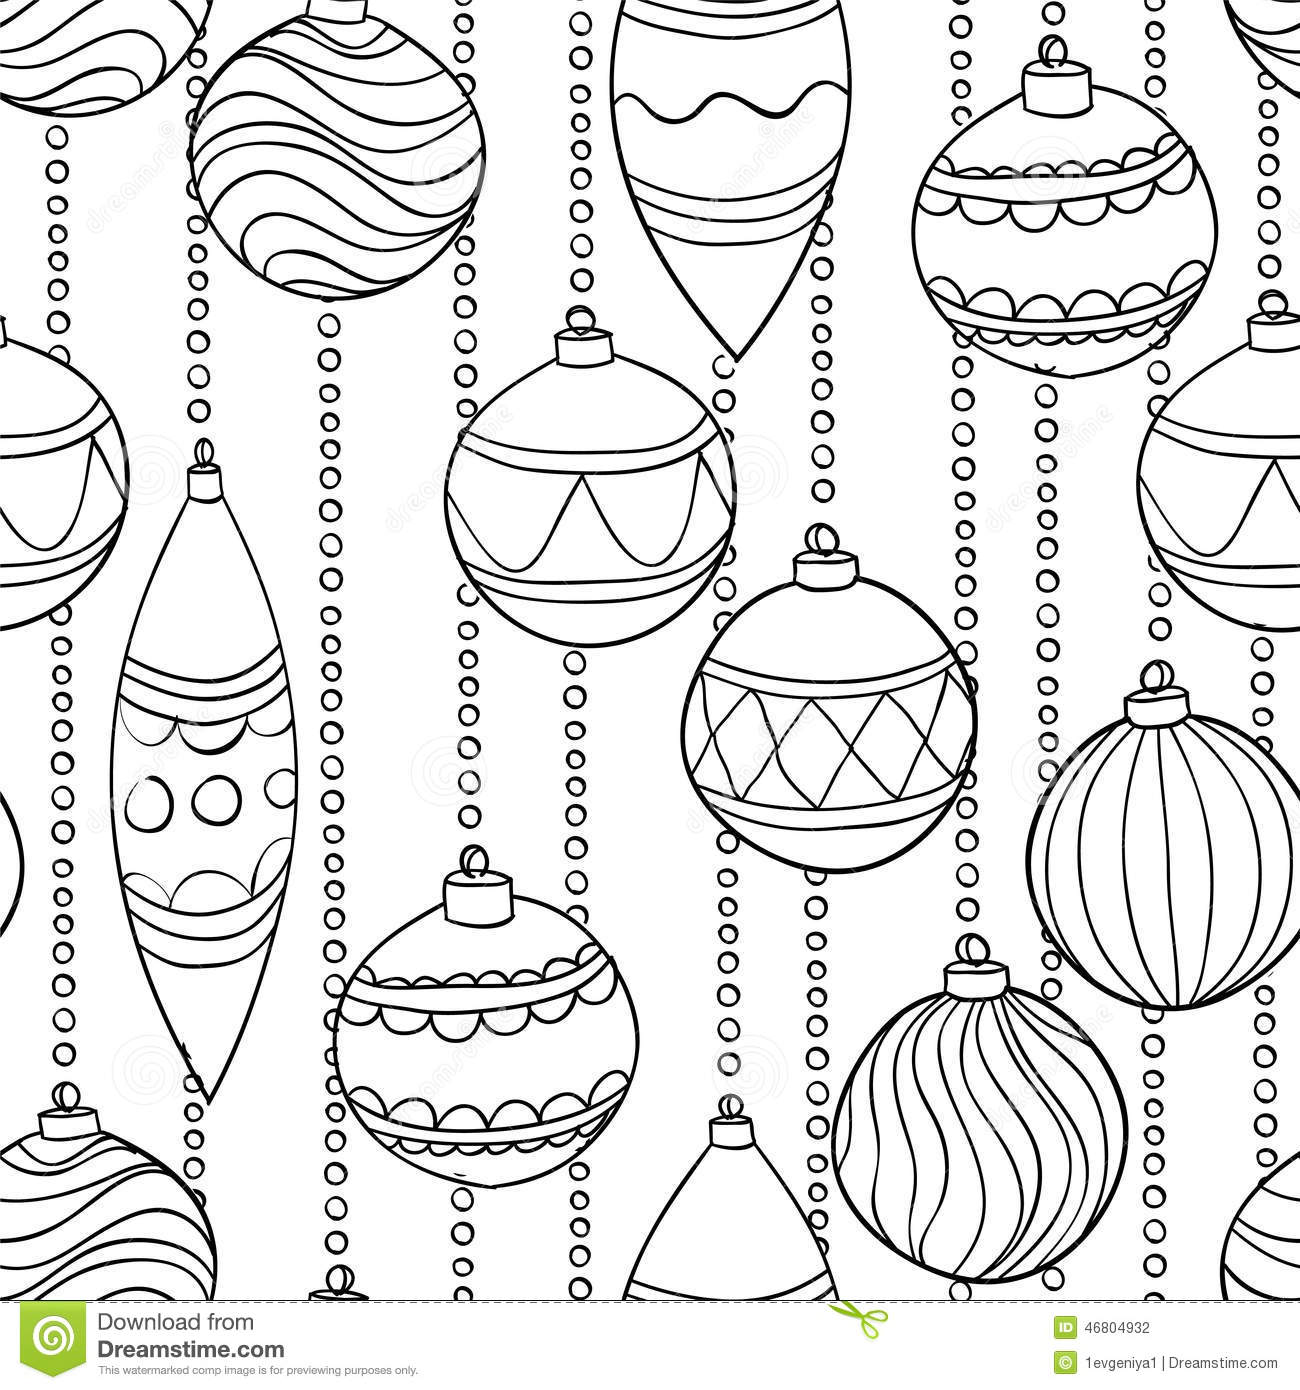 Monochrome, Black And White Seamless Pattern With